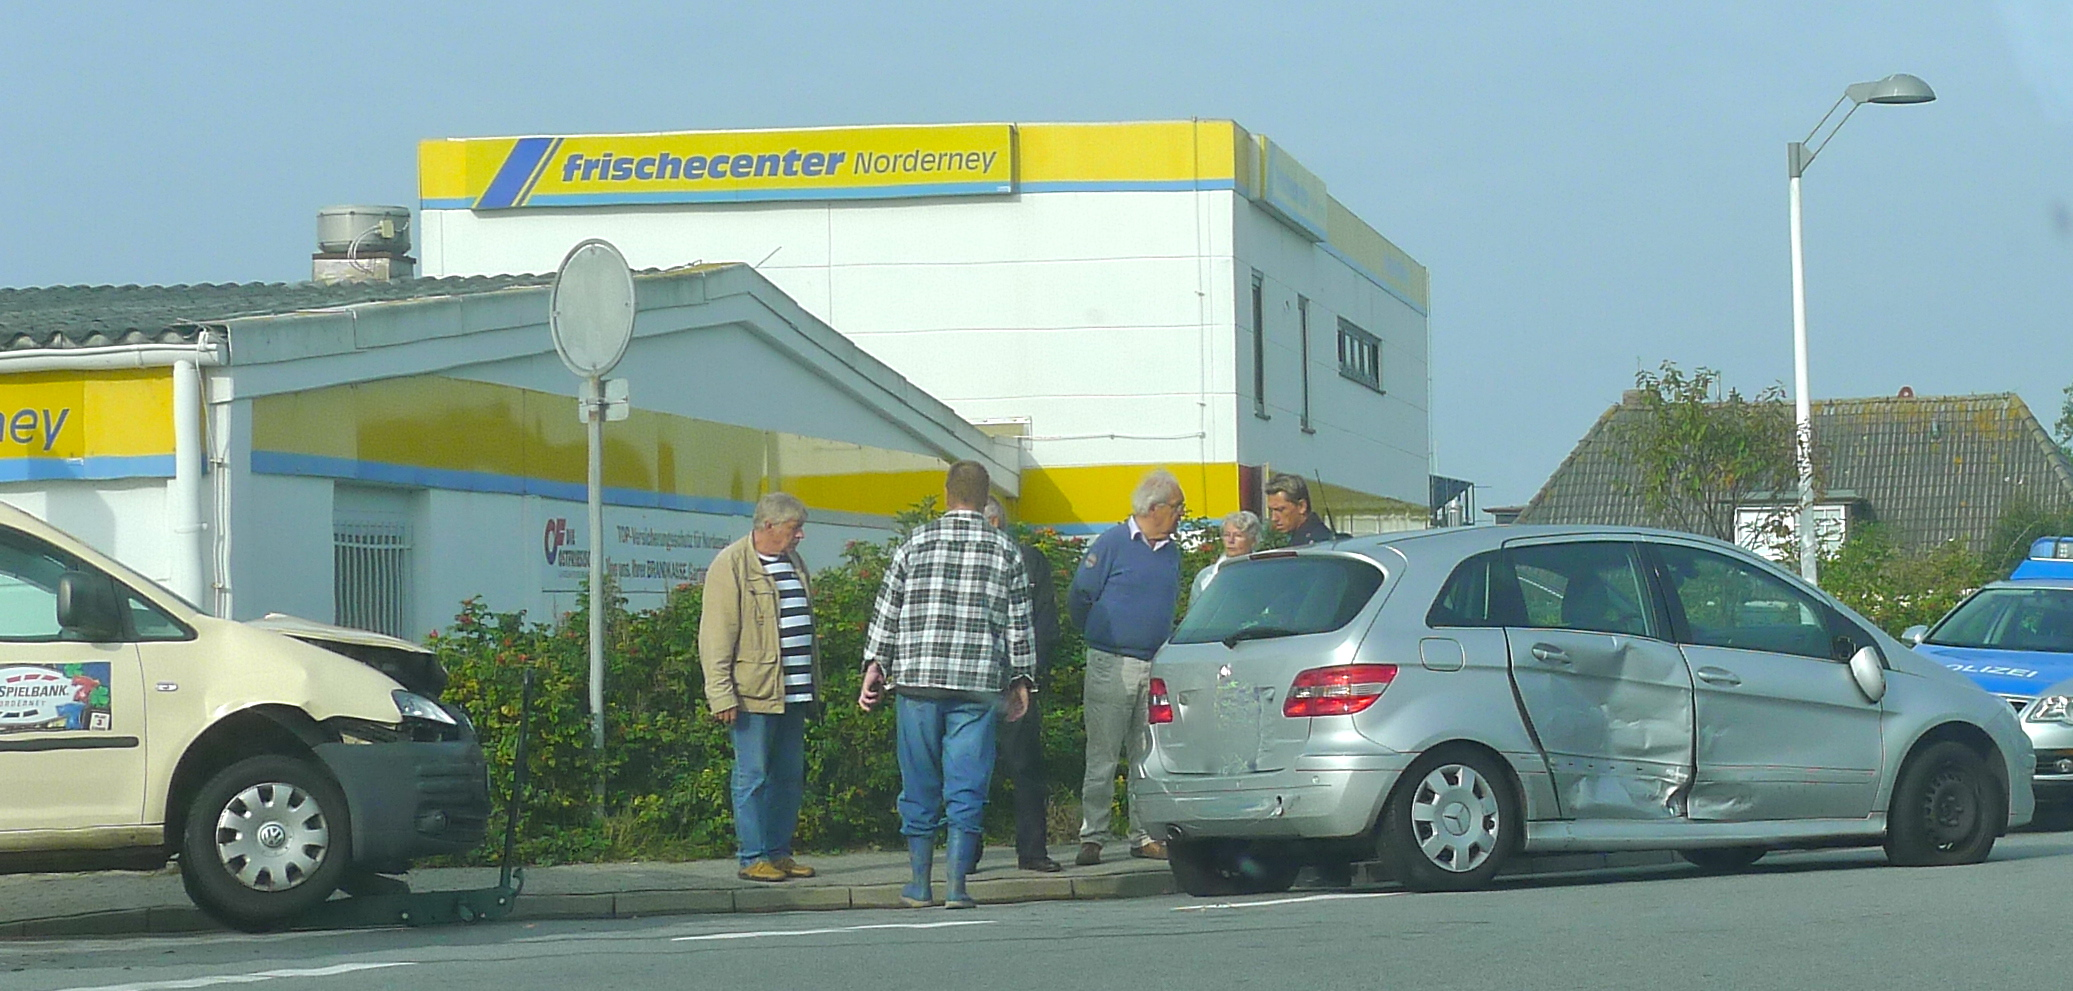 Taxi Norderney